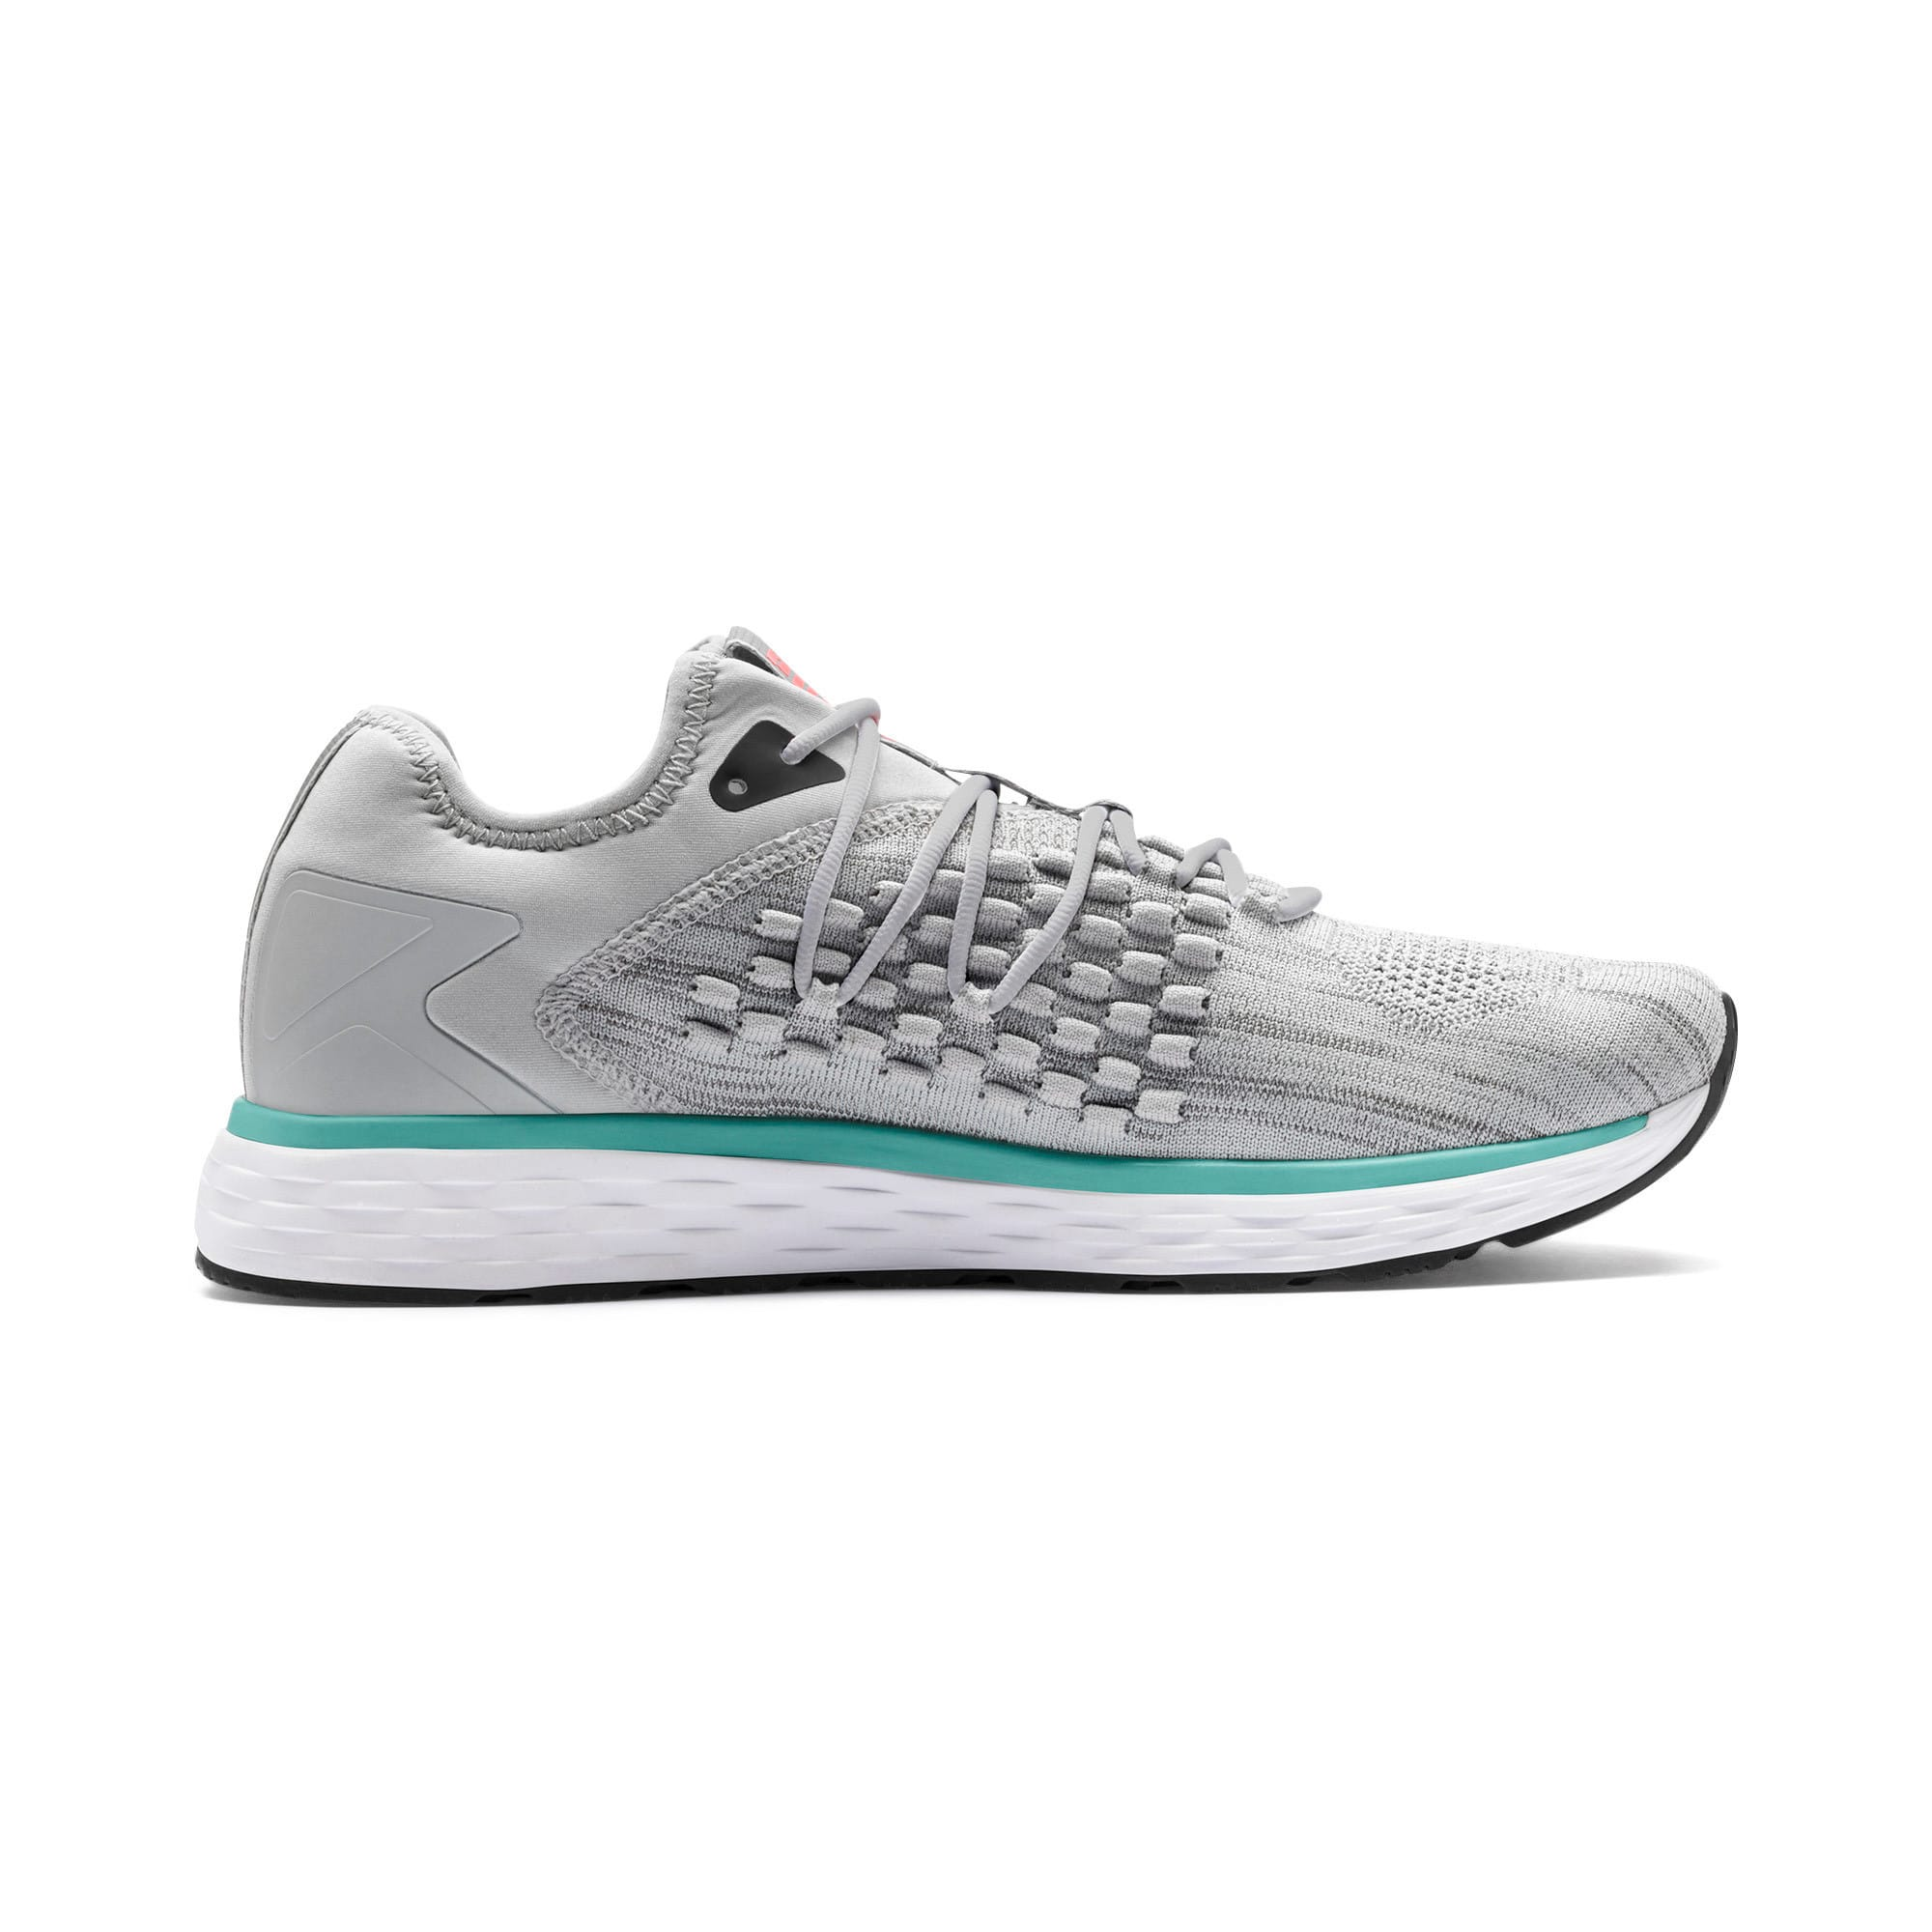 Thumbnail 7 of SPEED FUSEFIT Men's Running Shoes, High Rise-Blue Turquoise, medium-IND